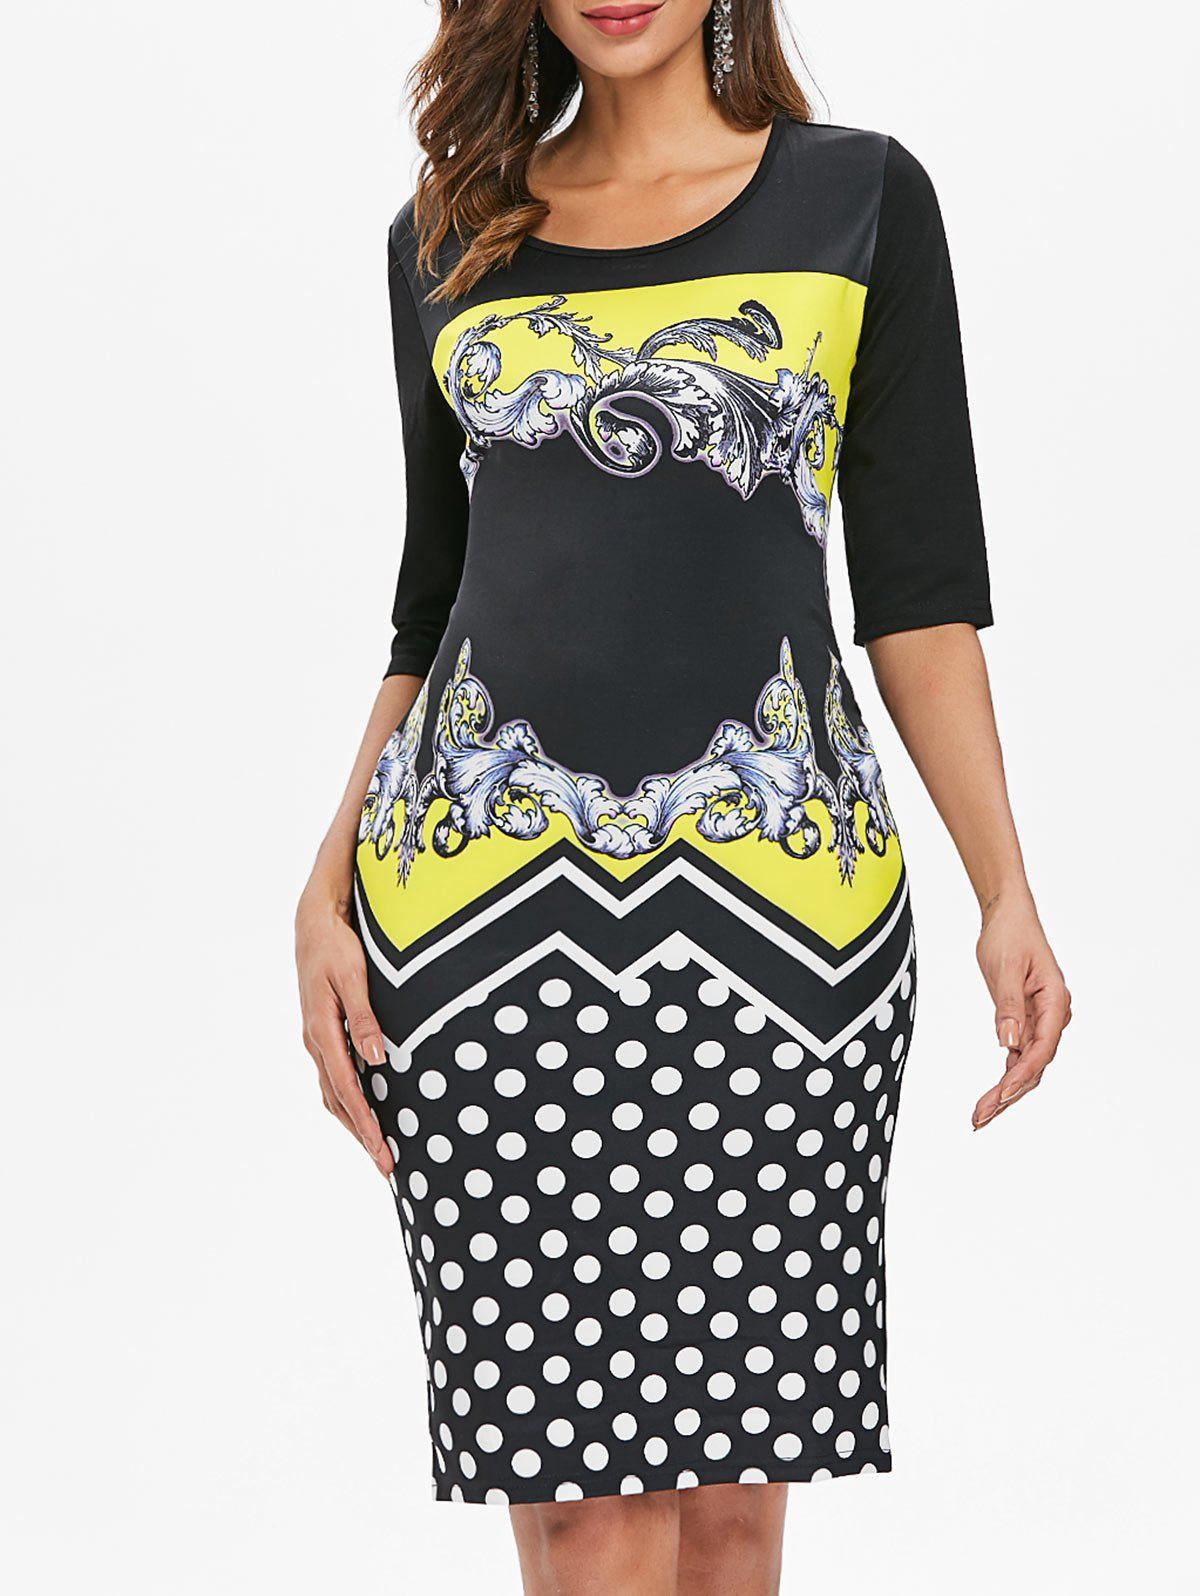 New Baroque Print Dotted Sheath Dress